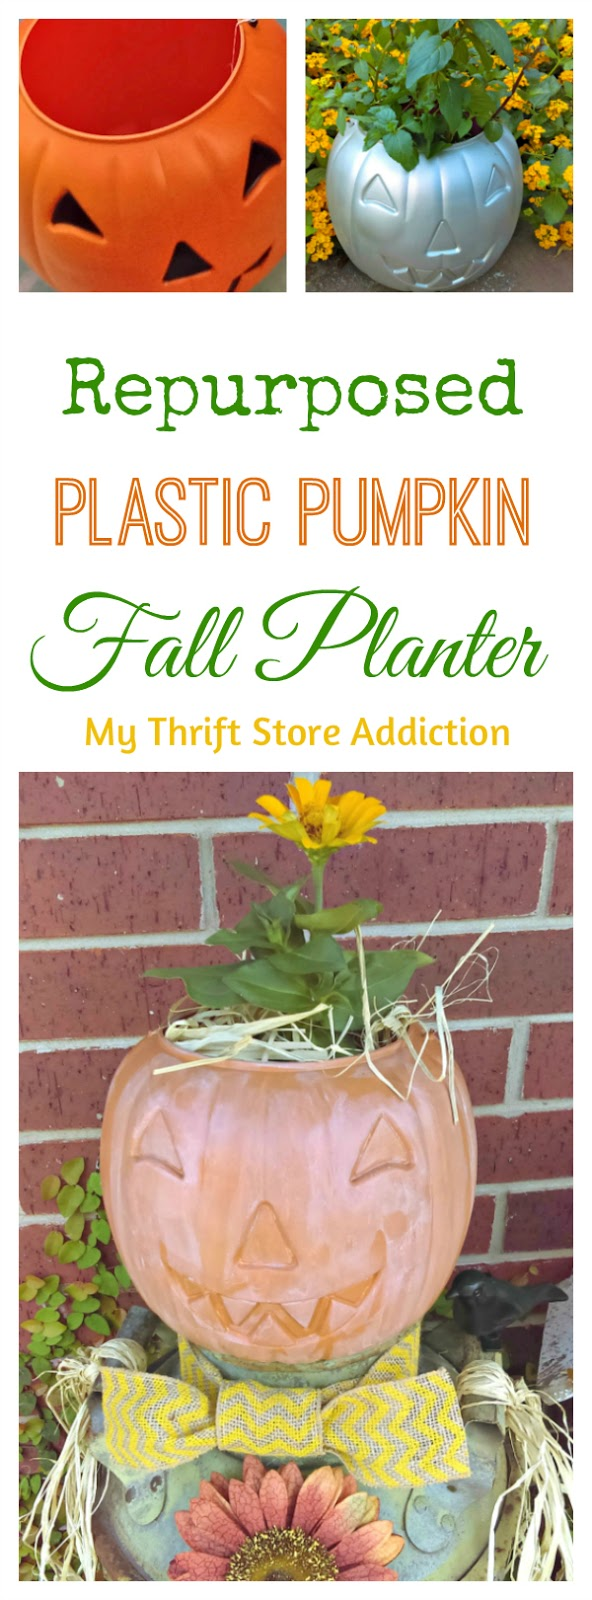 repurposed plastic pumpkin planter